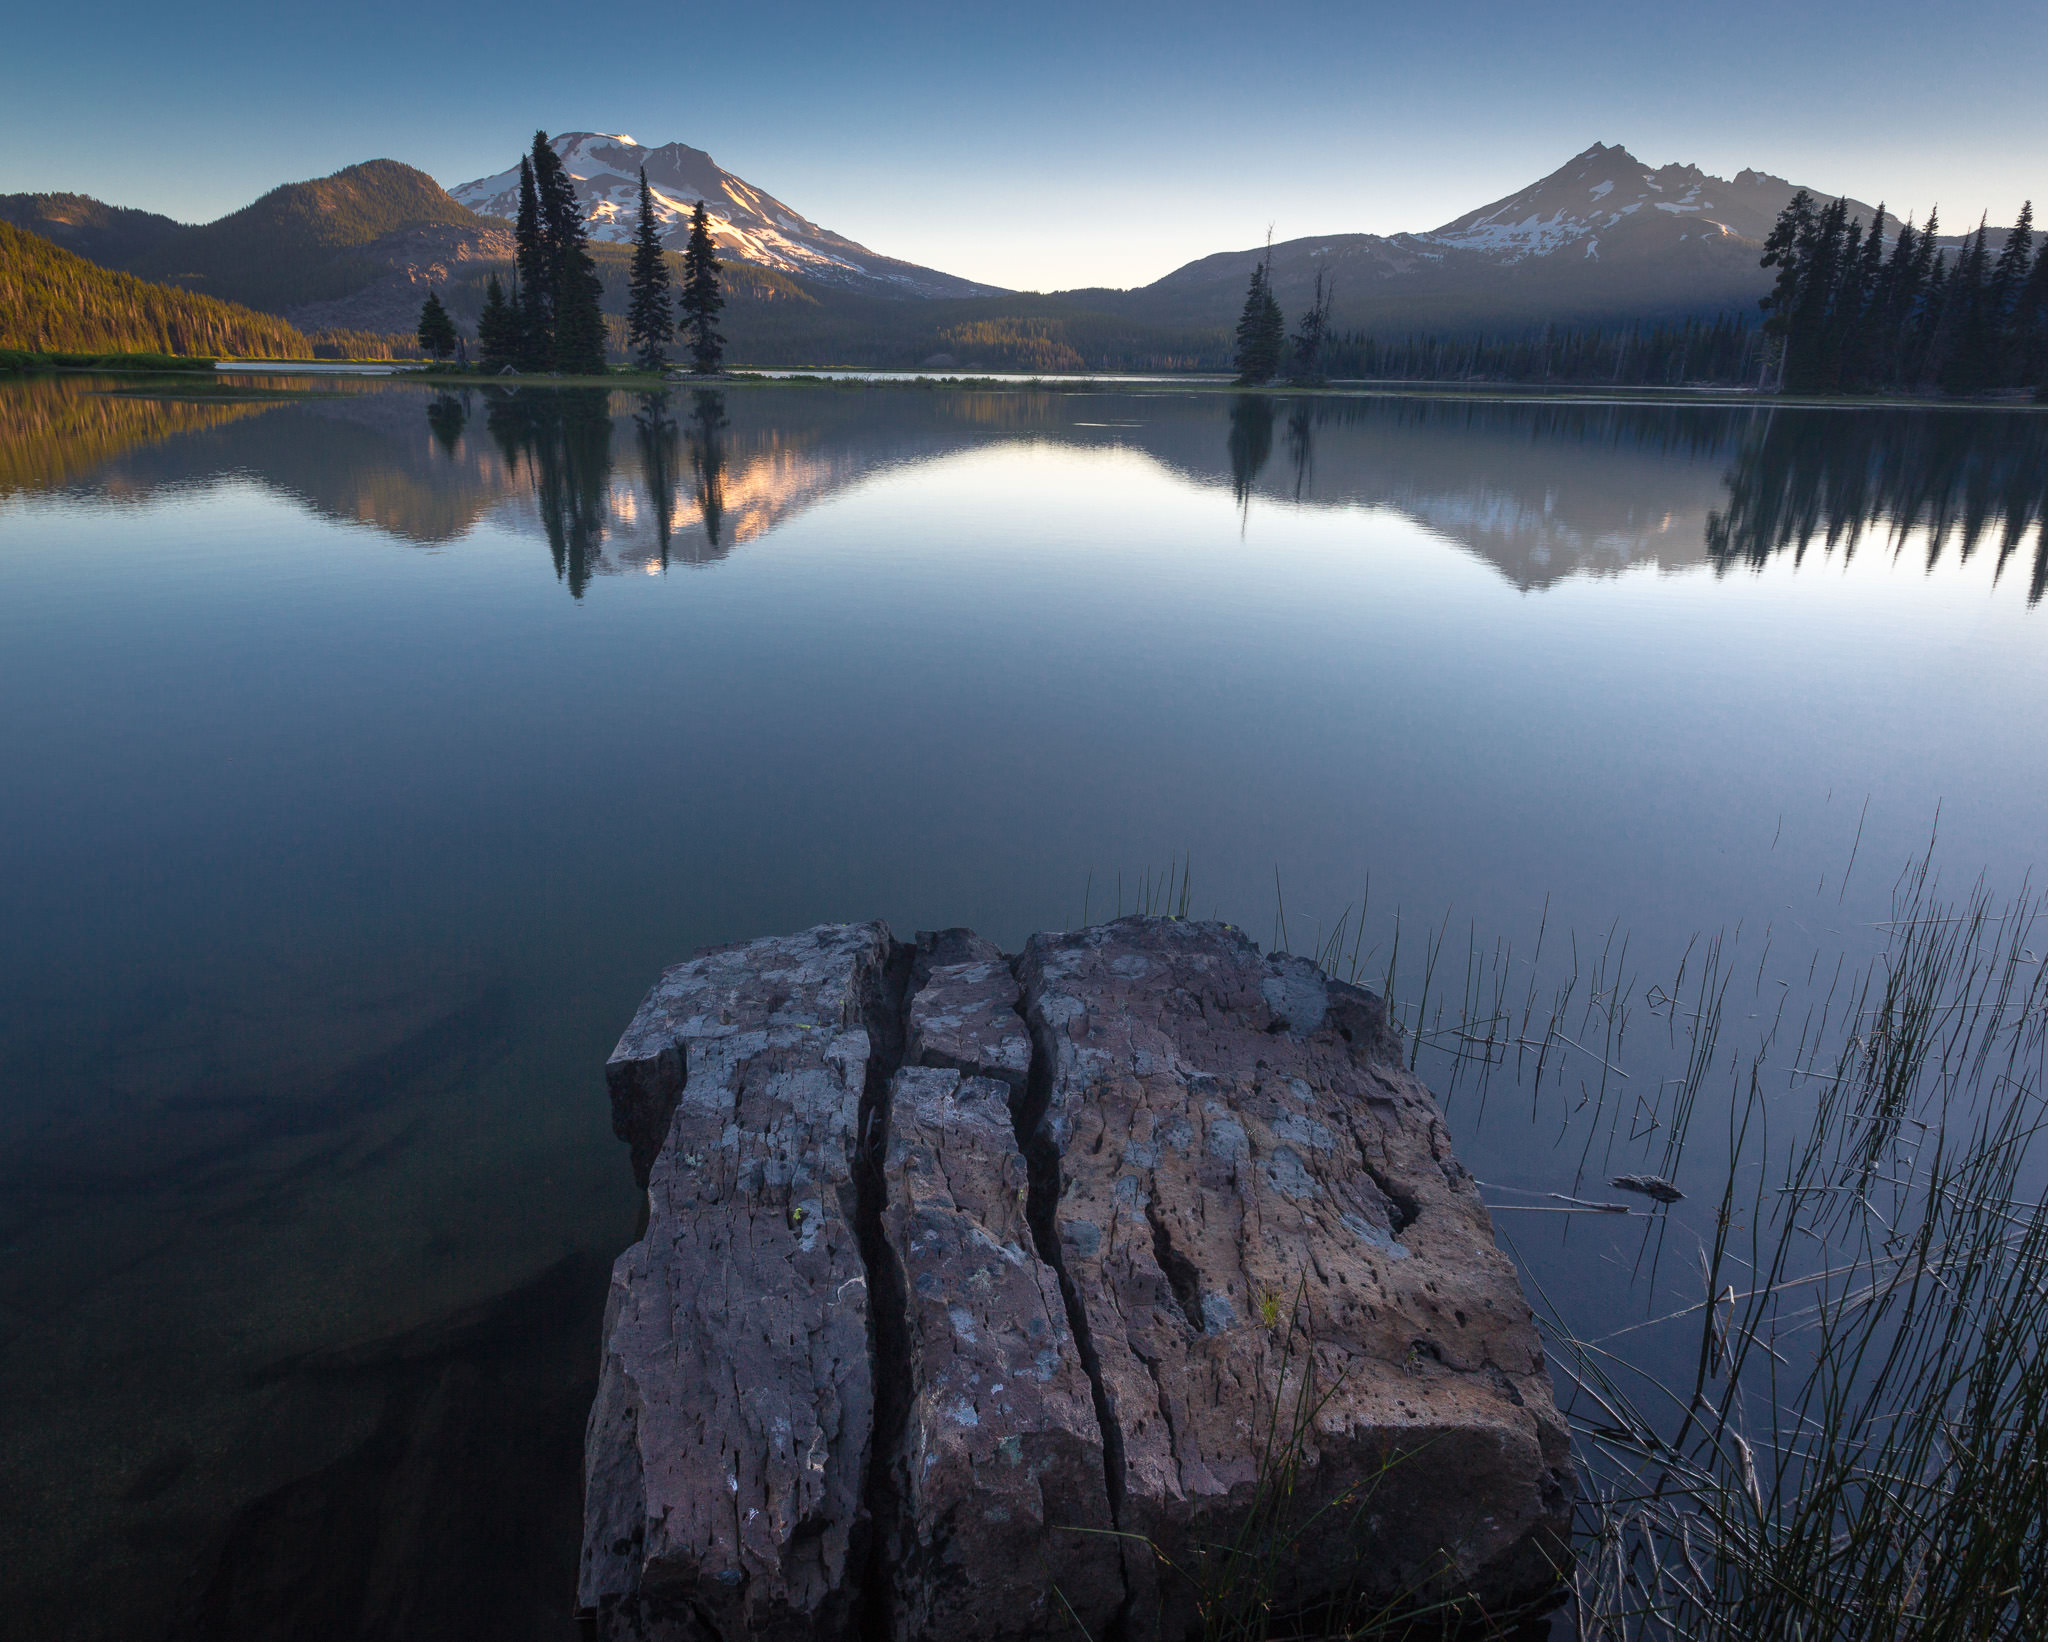 First light at Sparks Lake in Bend, OR